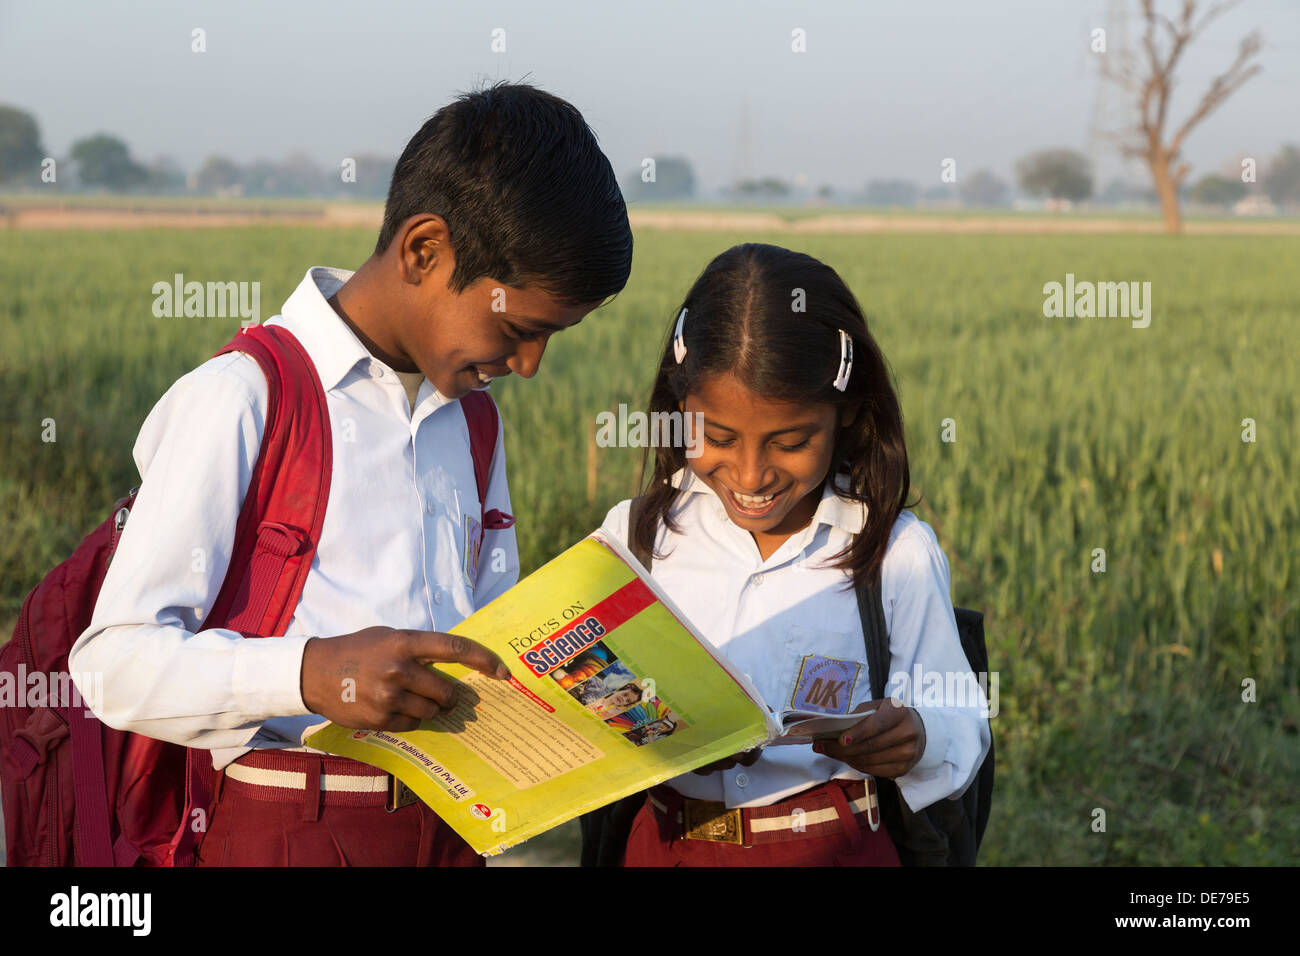 India, Uttar Pradesh, Agra, young brother & sister in school uniform looking at text books - Stock Image